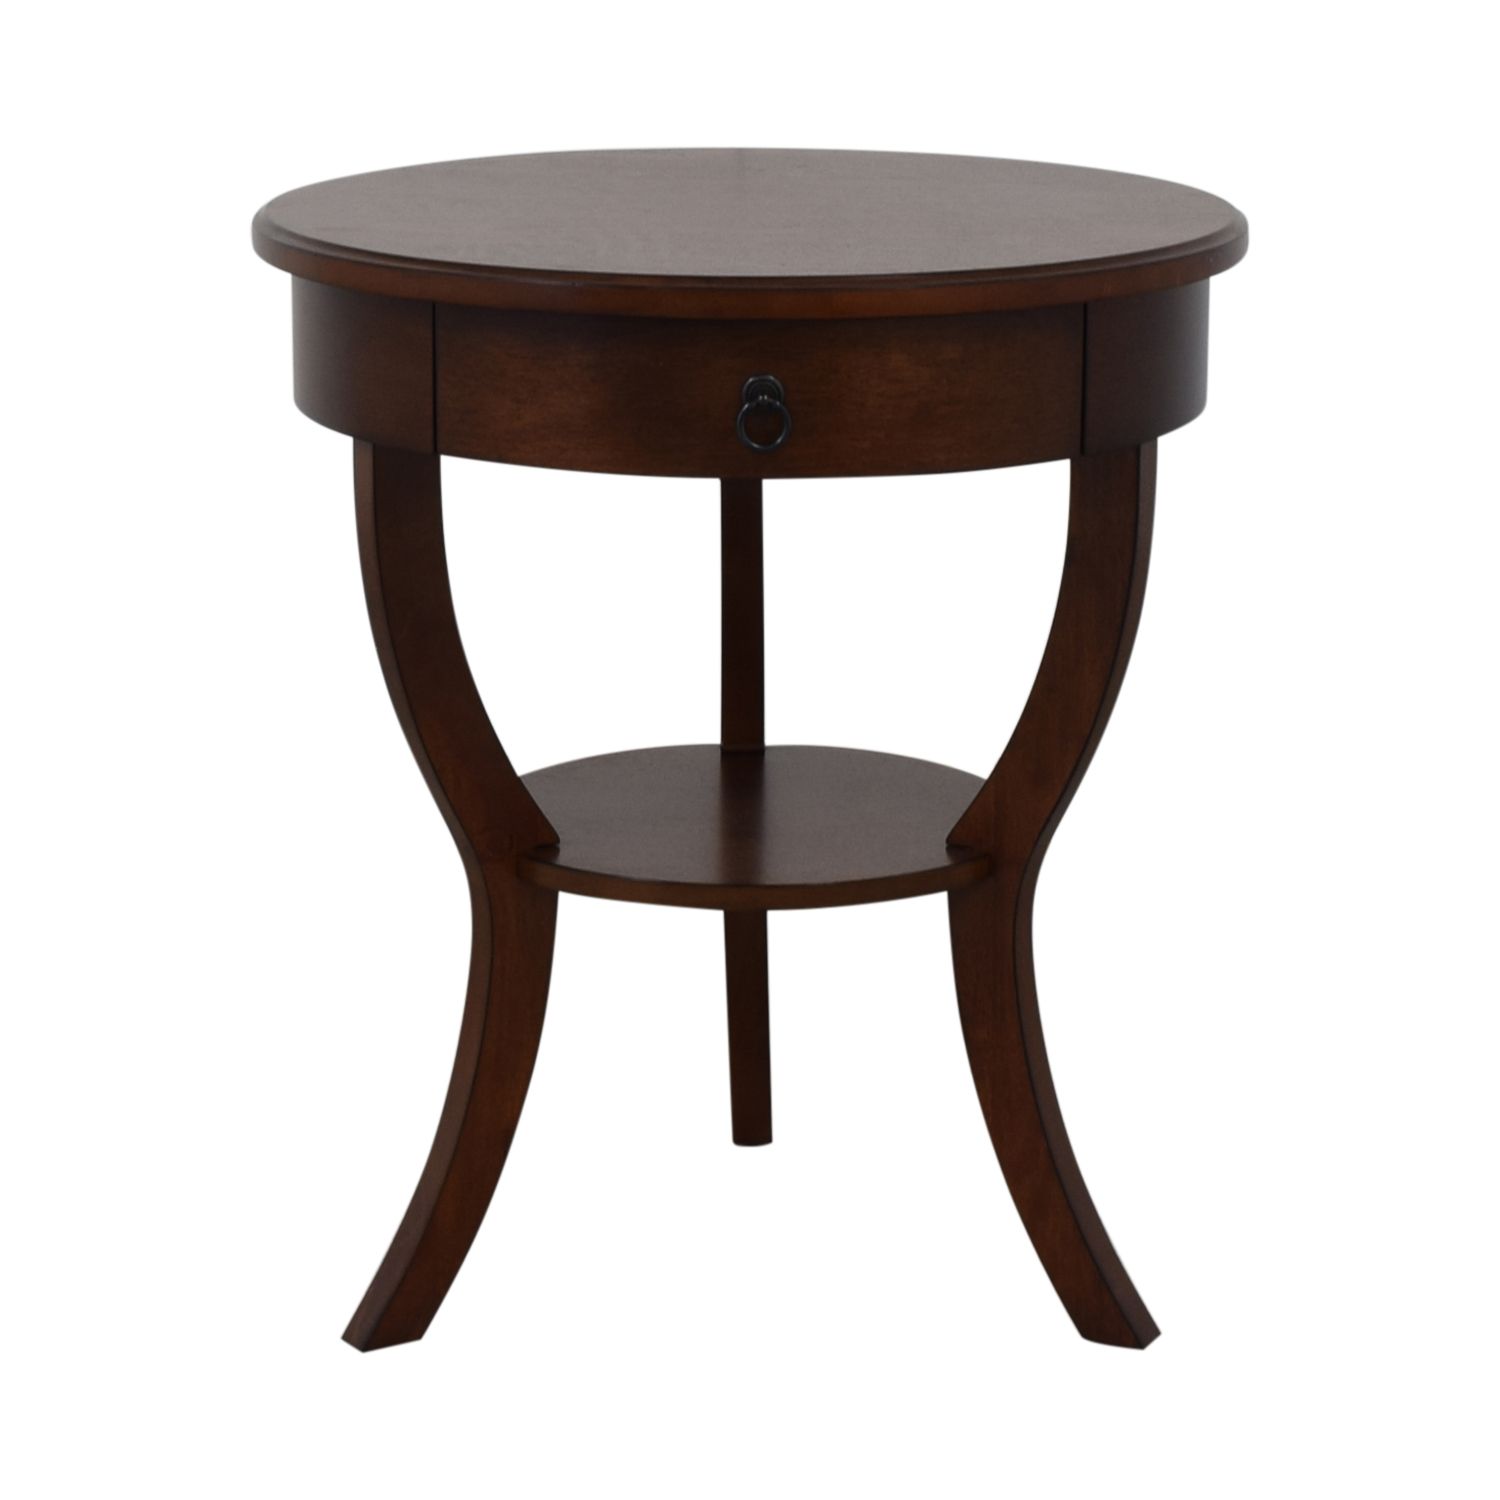 buy Pottery Barn Carrie Round Single-Drawer Pedestal End Table Pottery Barn Tables